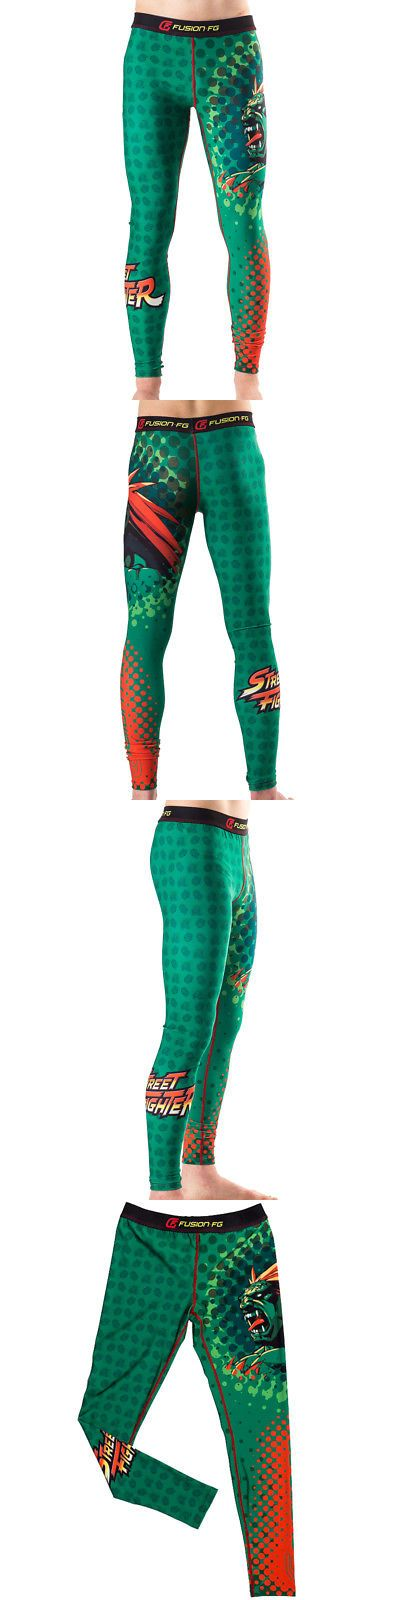 Pants 179772: Fusion Fight Gear Street Fighter Blanka Spats - Large - Green -> BUY IT NOW ONLY: $59.95 on eBay!